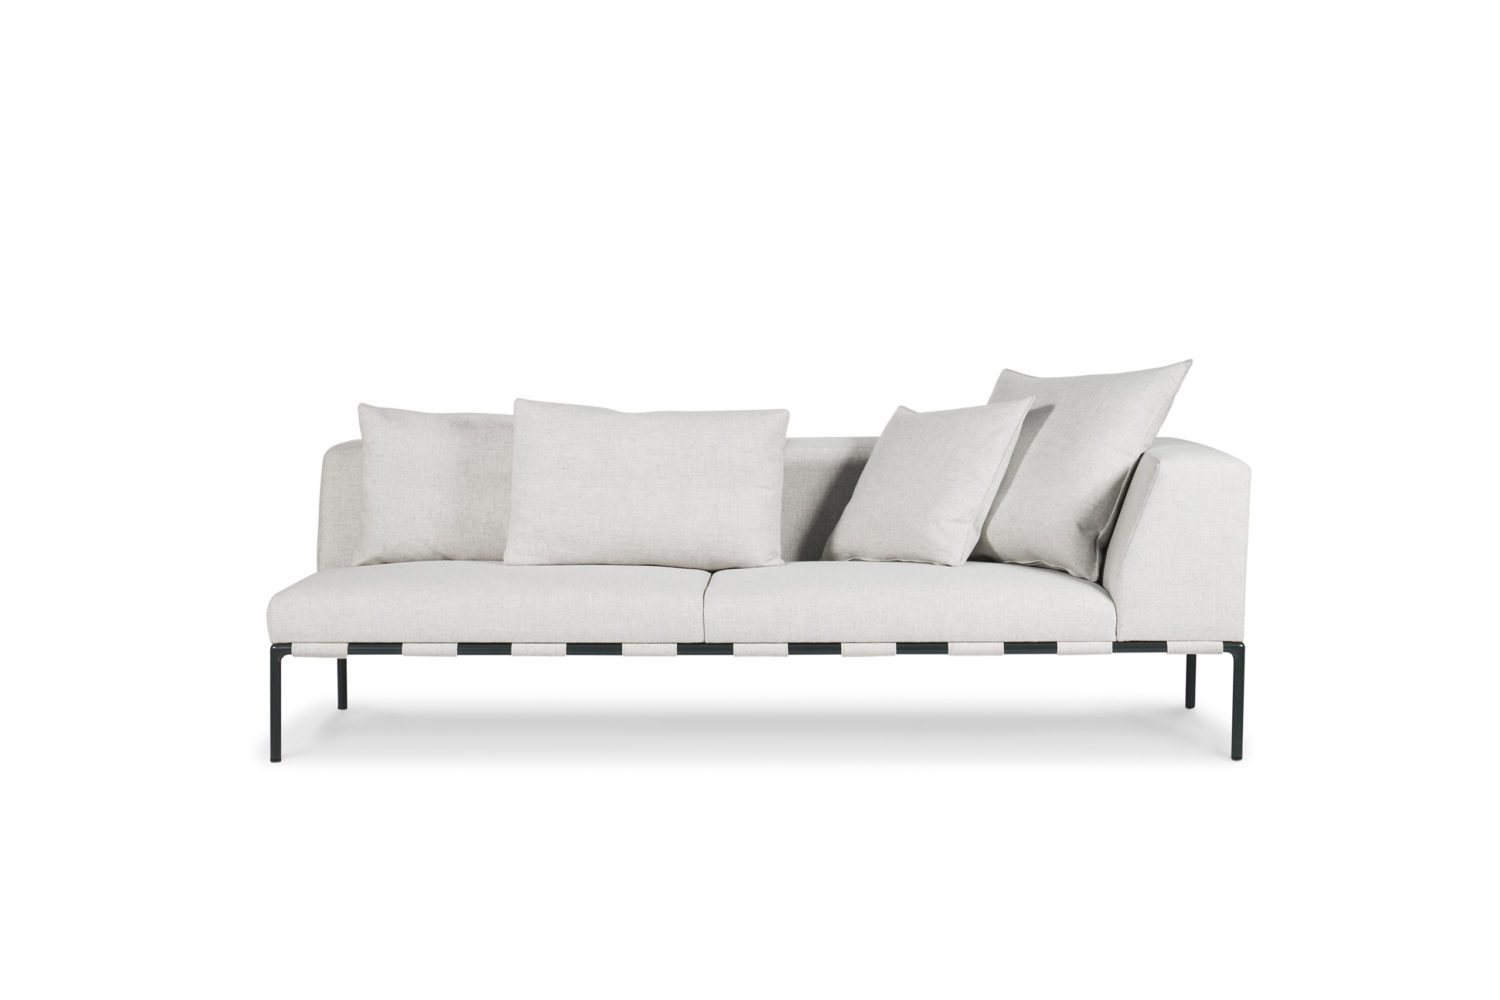 South Sofa By Christophe Pillet 4